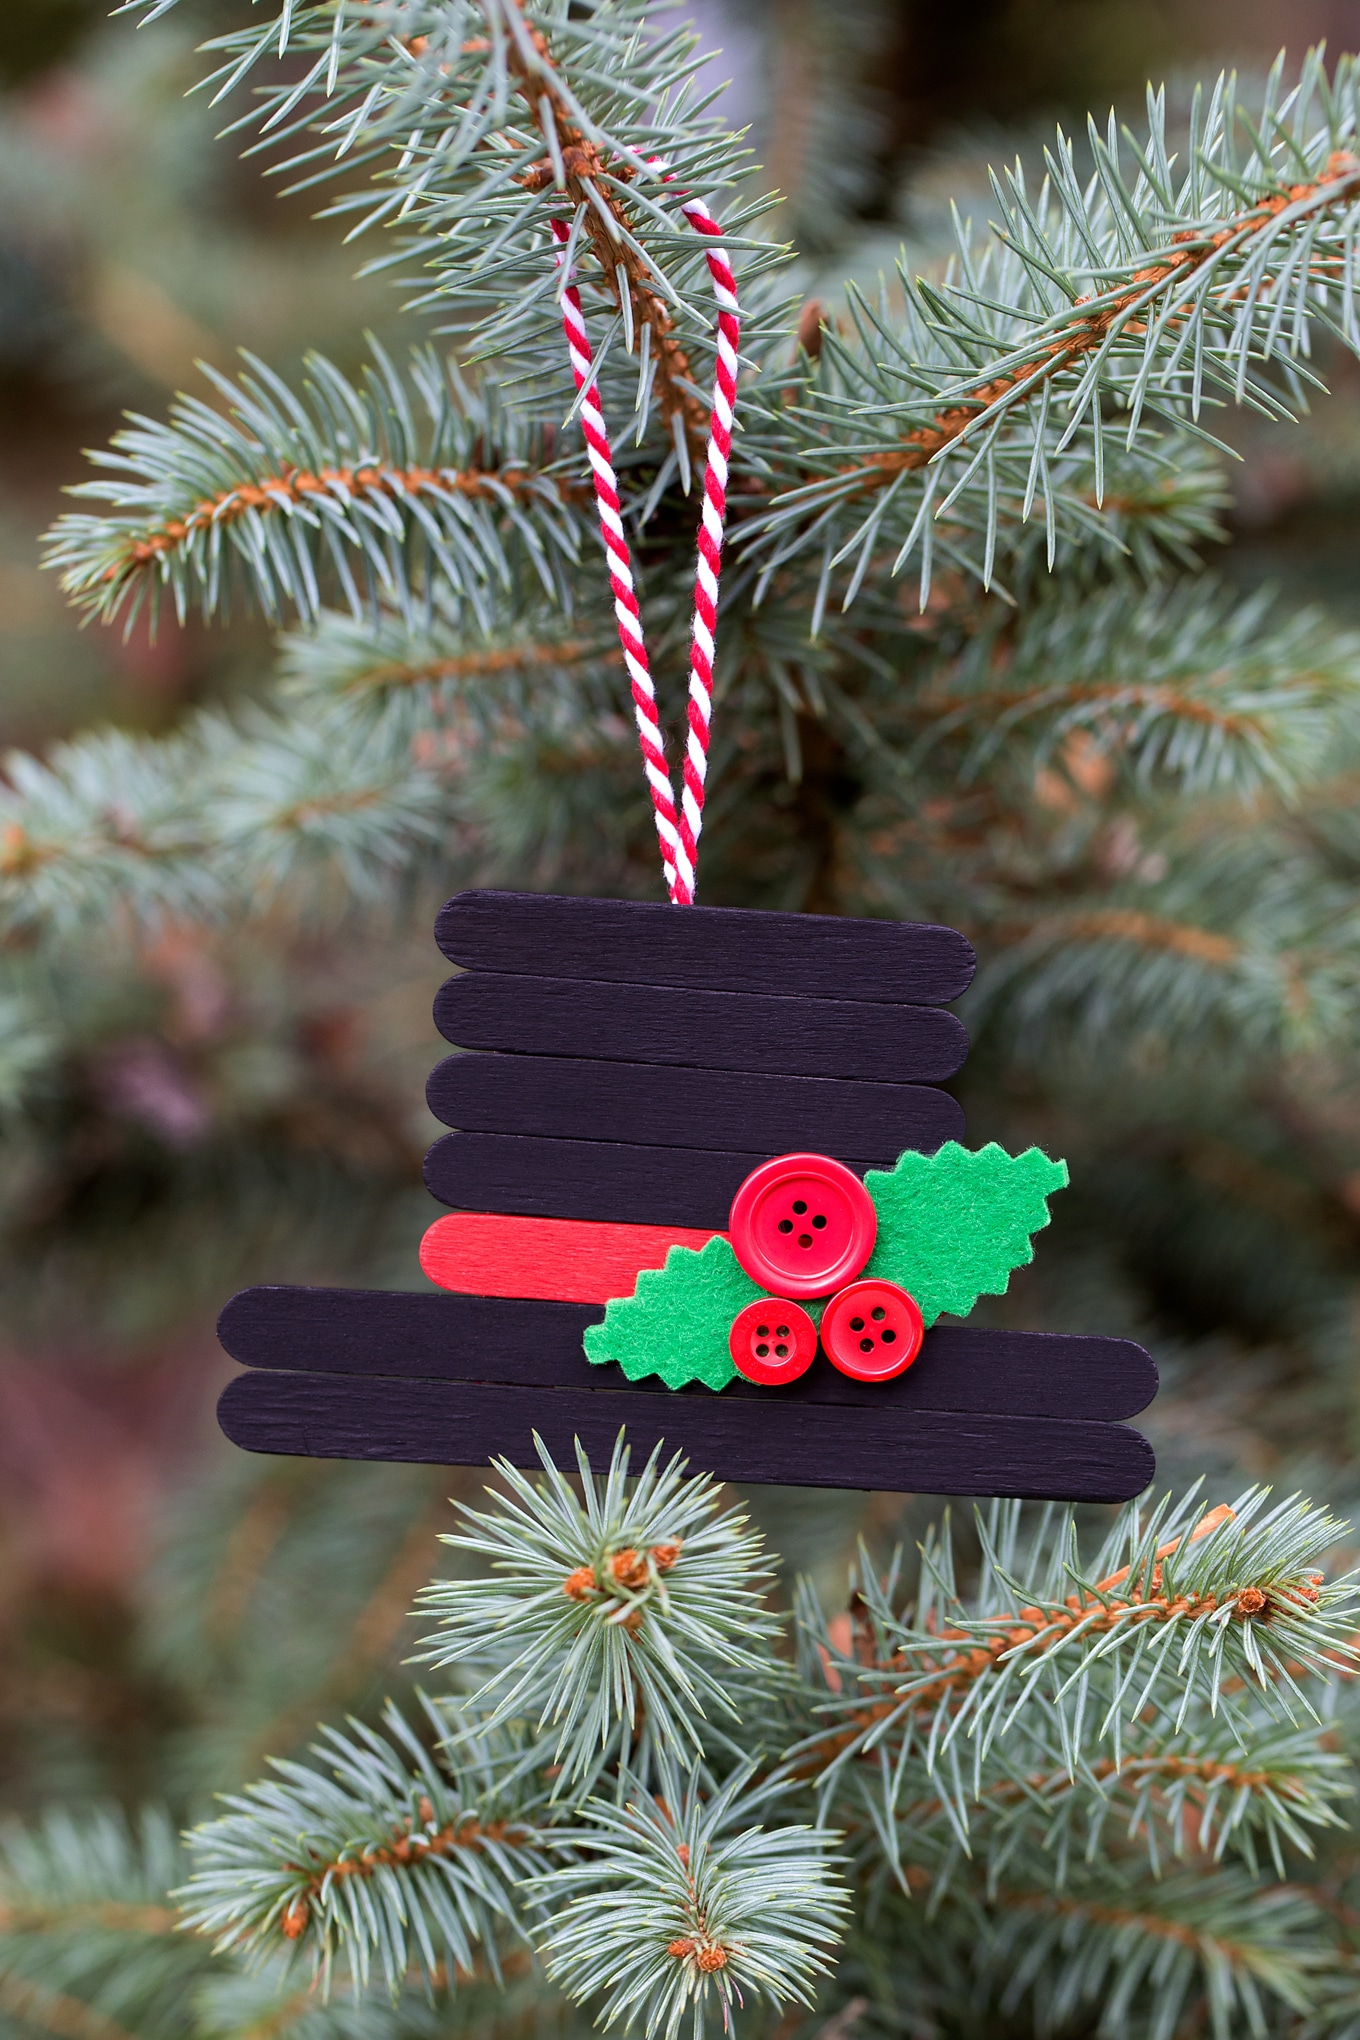 This creative Snowman Hat Ornament is a cute Christmas craft for crafters of all ages.